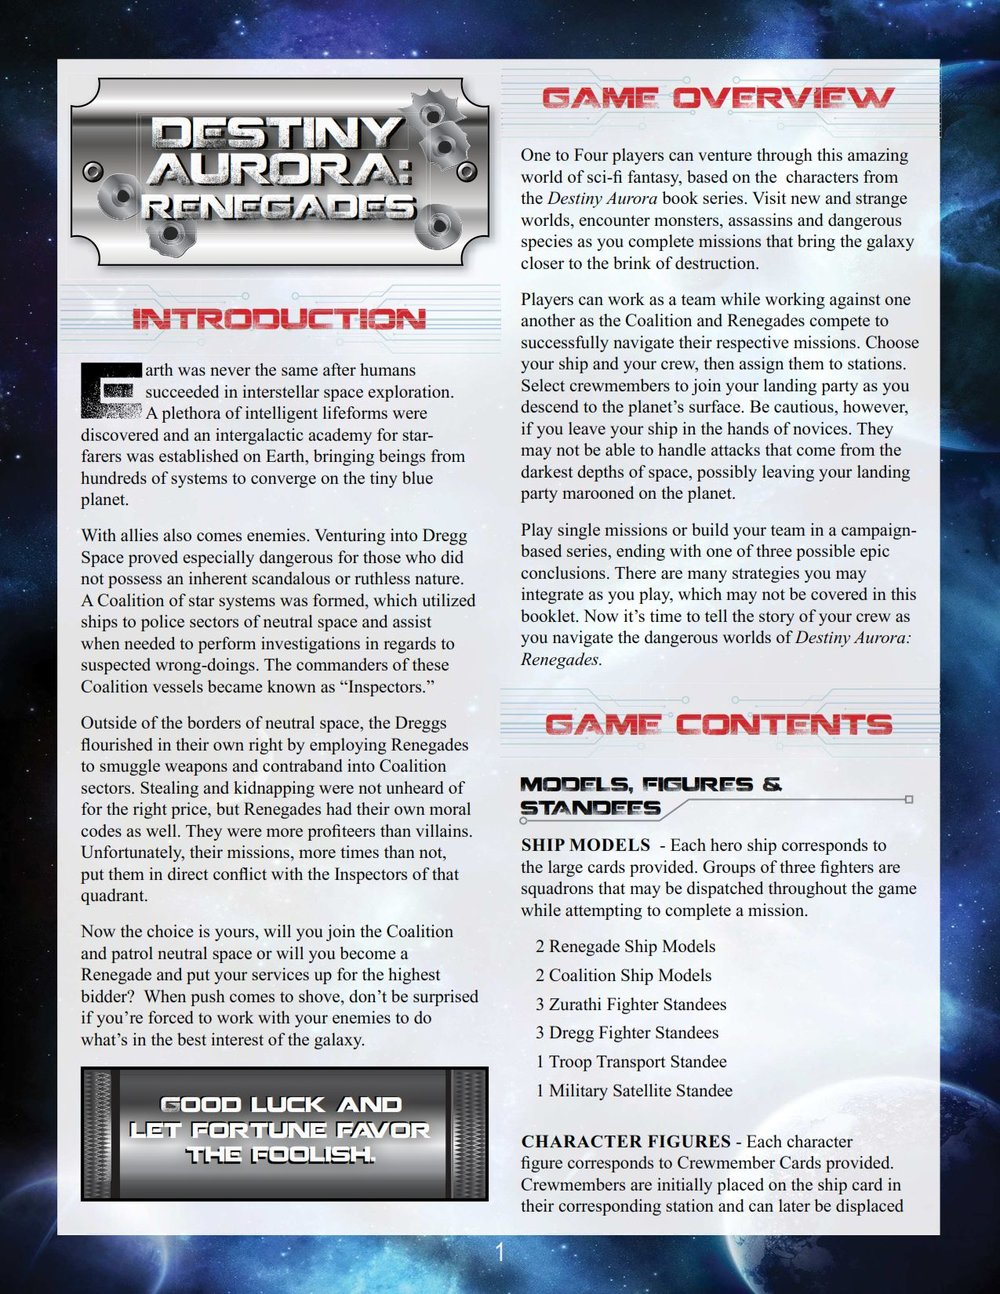 Renegades_Rule_Book_002.jpg